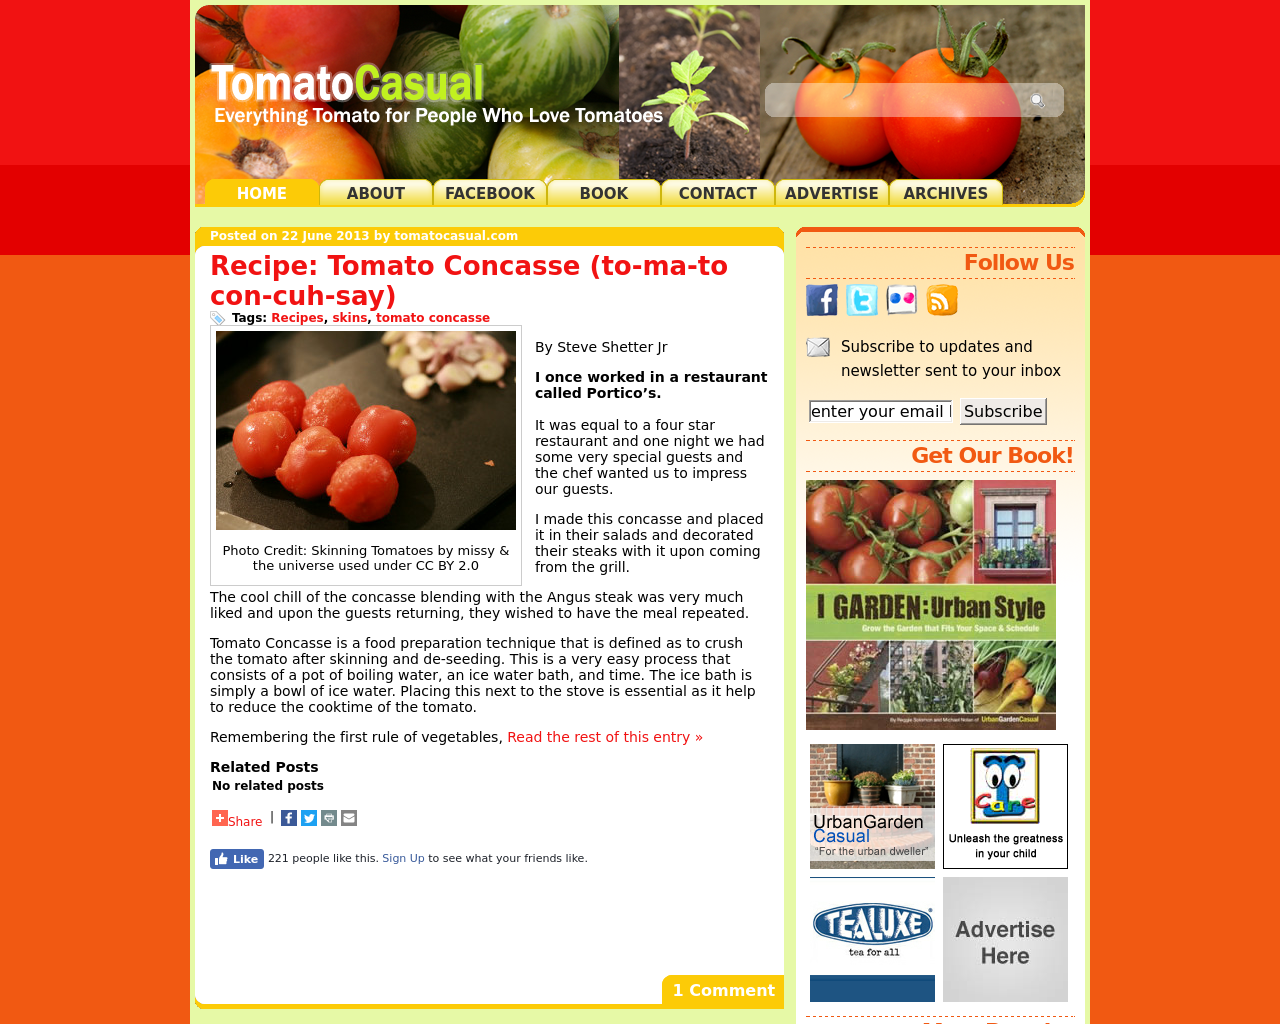 Tomato-Casual-Advertising-Reviews-Pricing